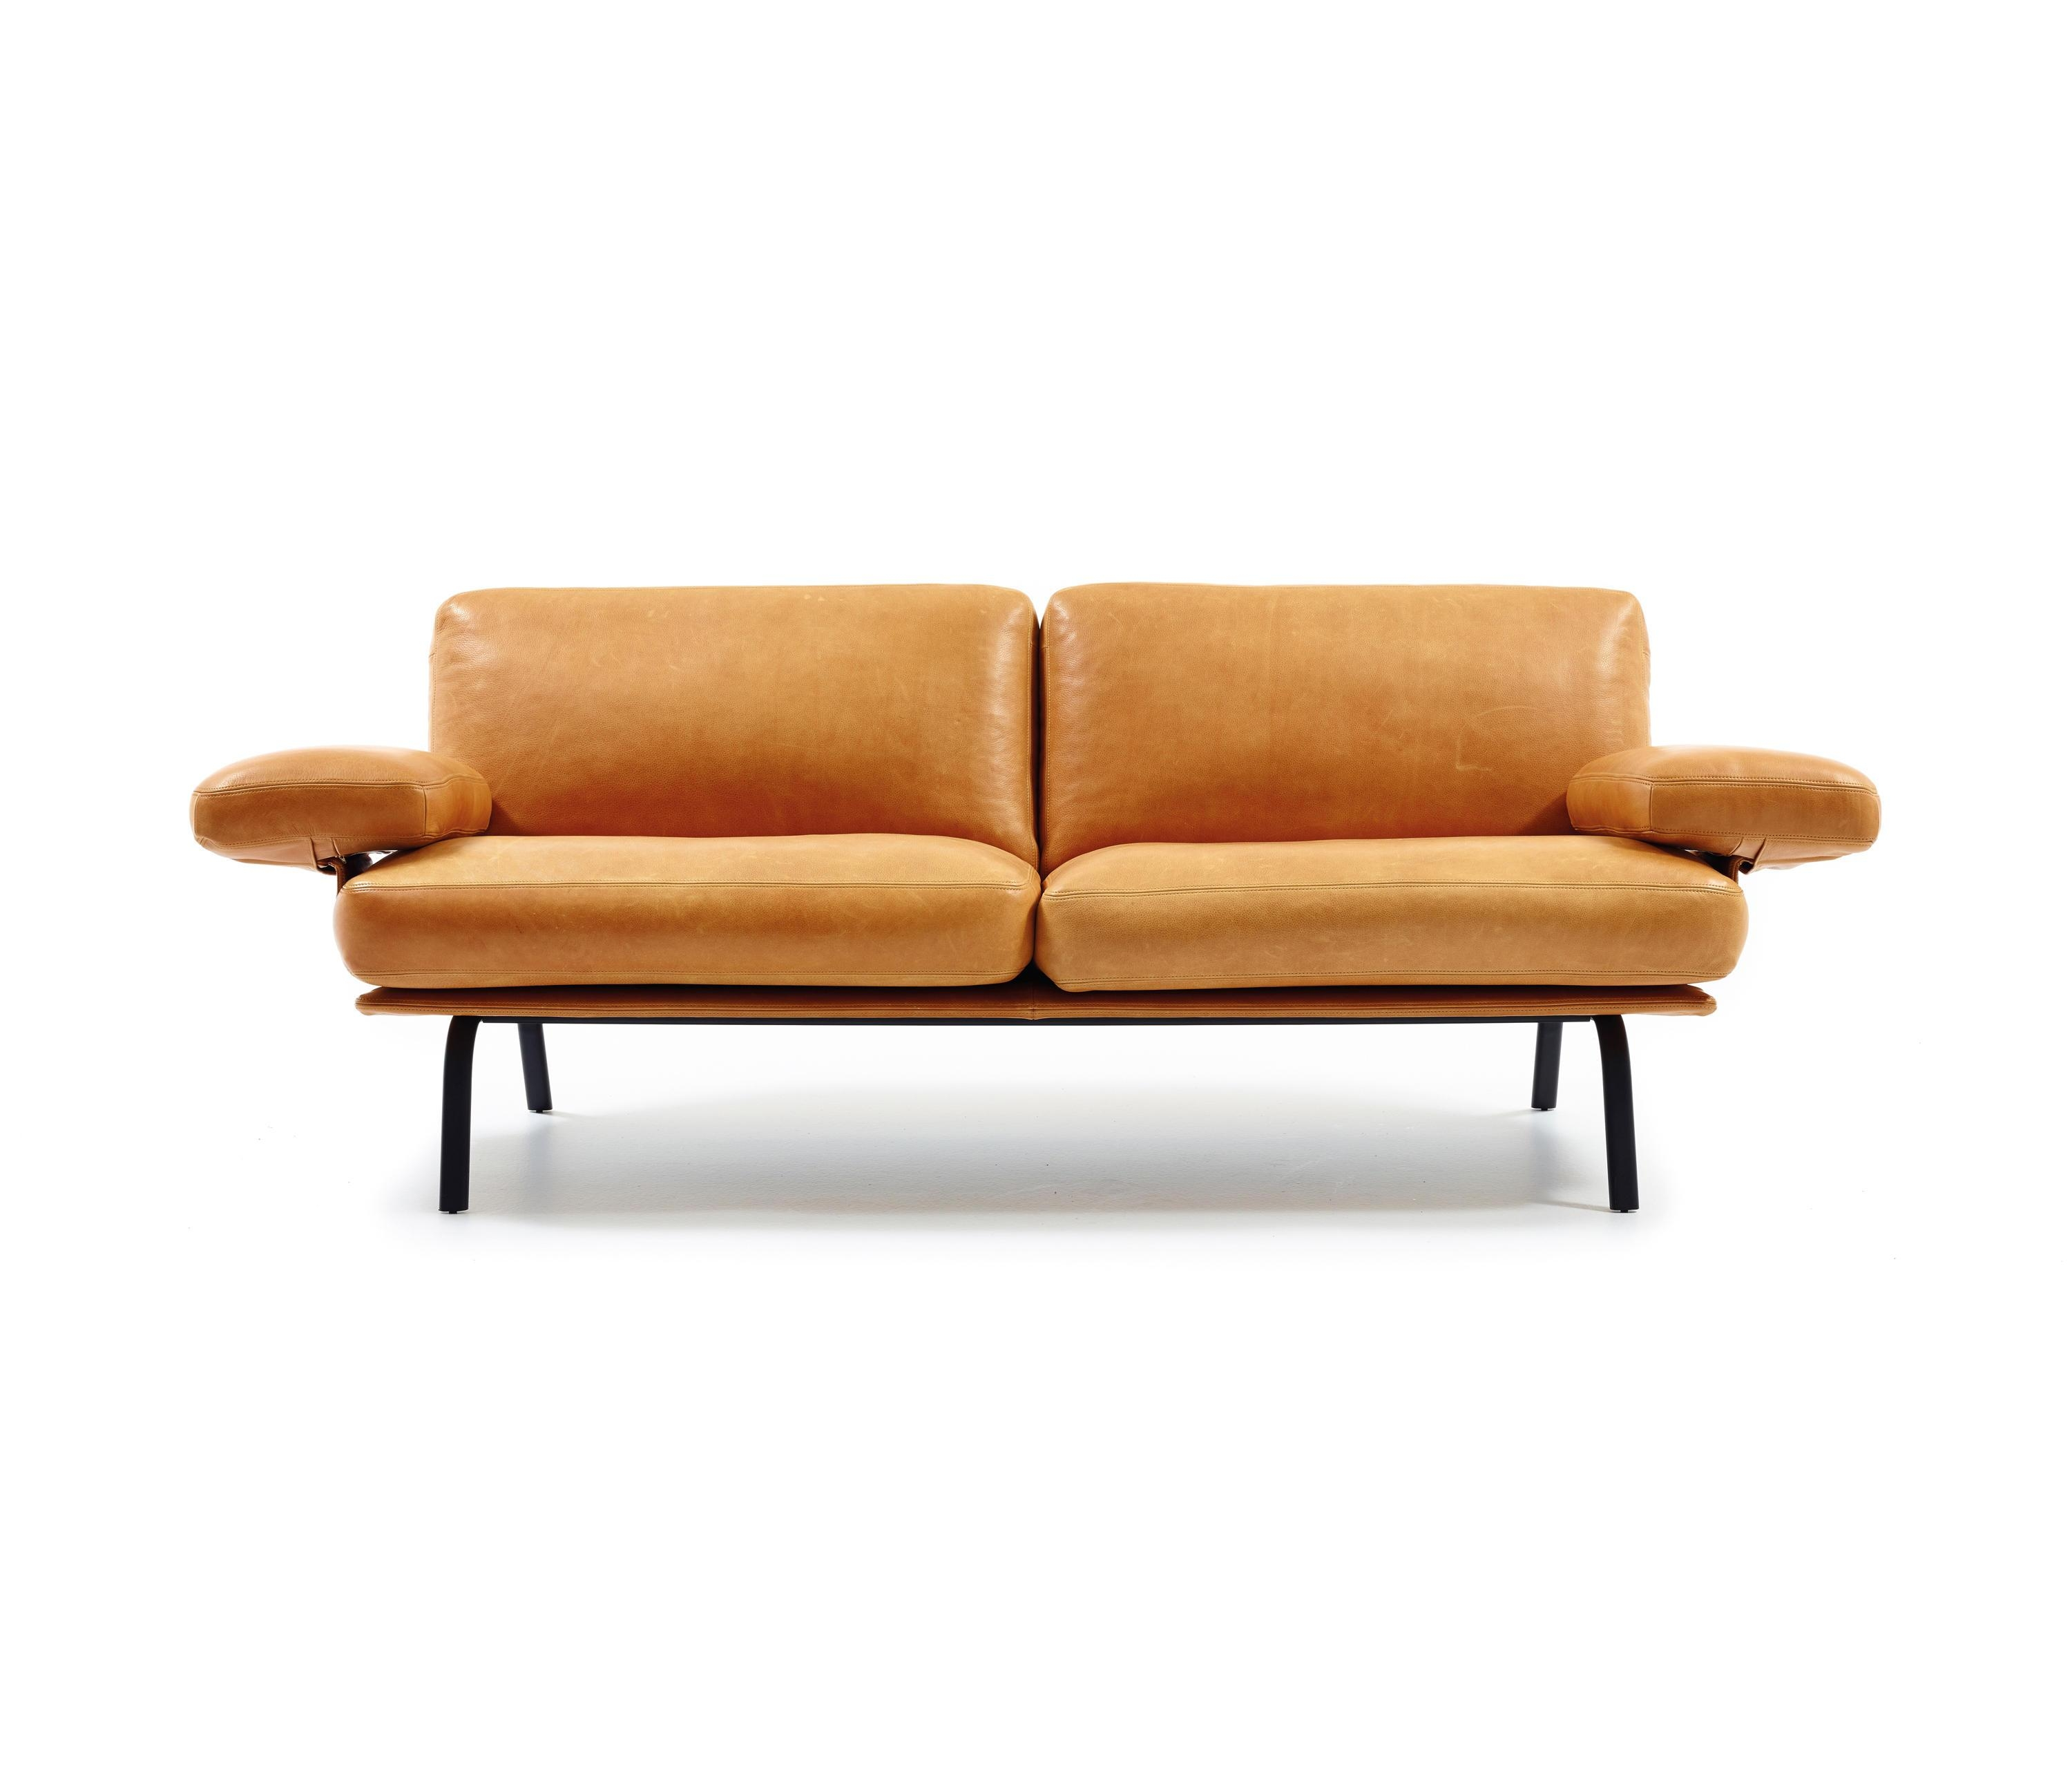 New Port - Lounge Sofas From Durlet | Architonic with Newport Sofas